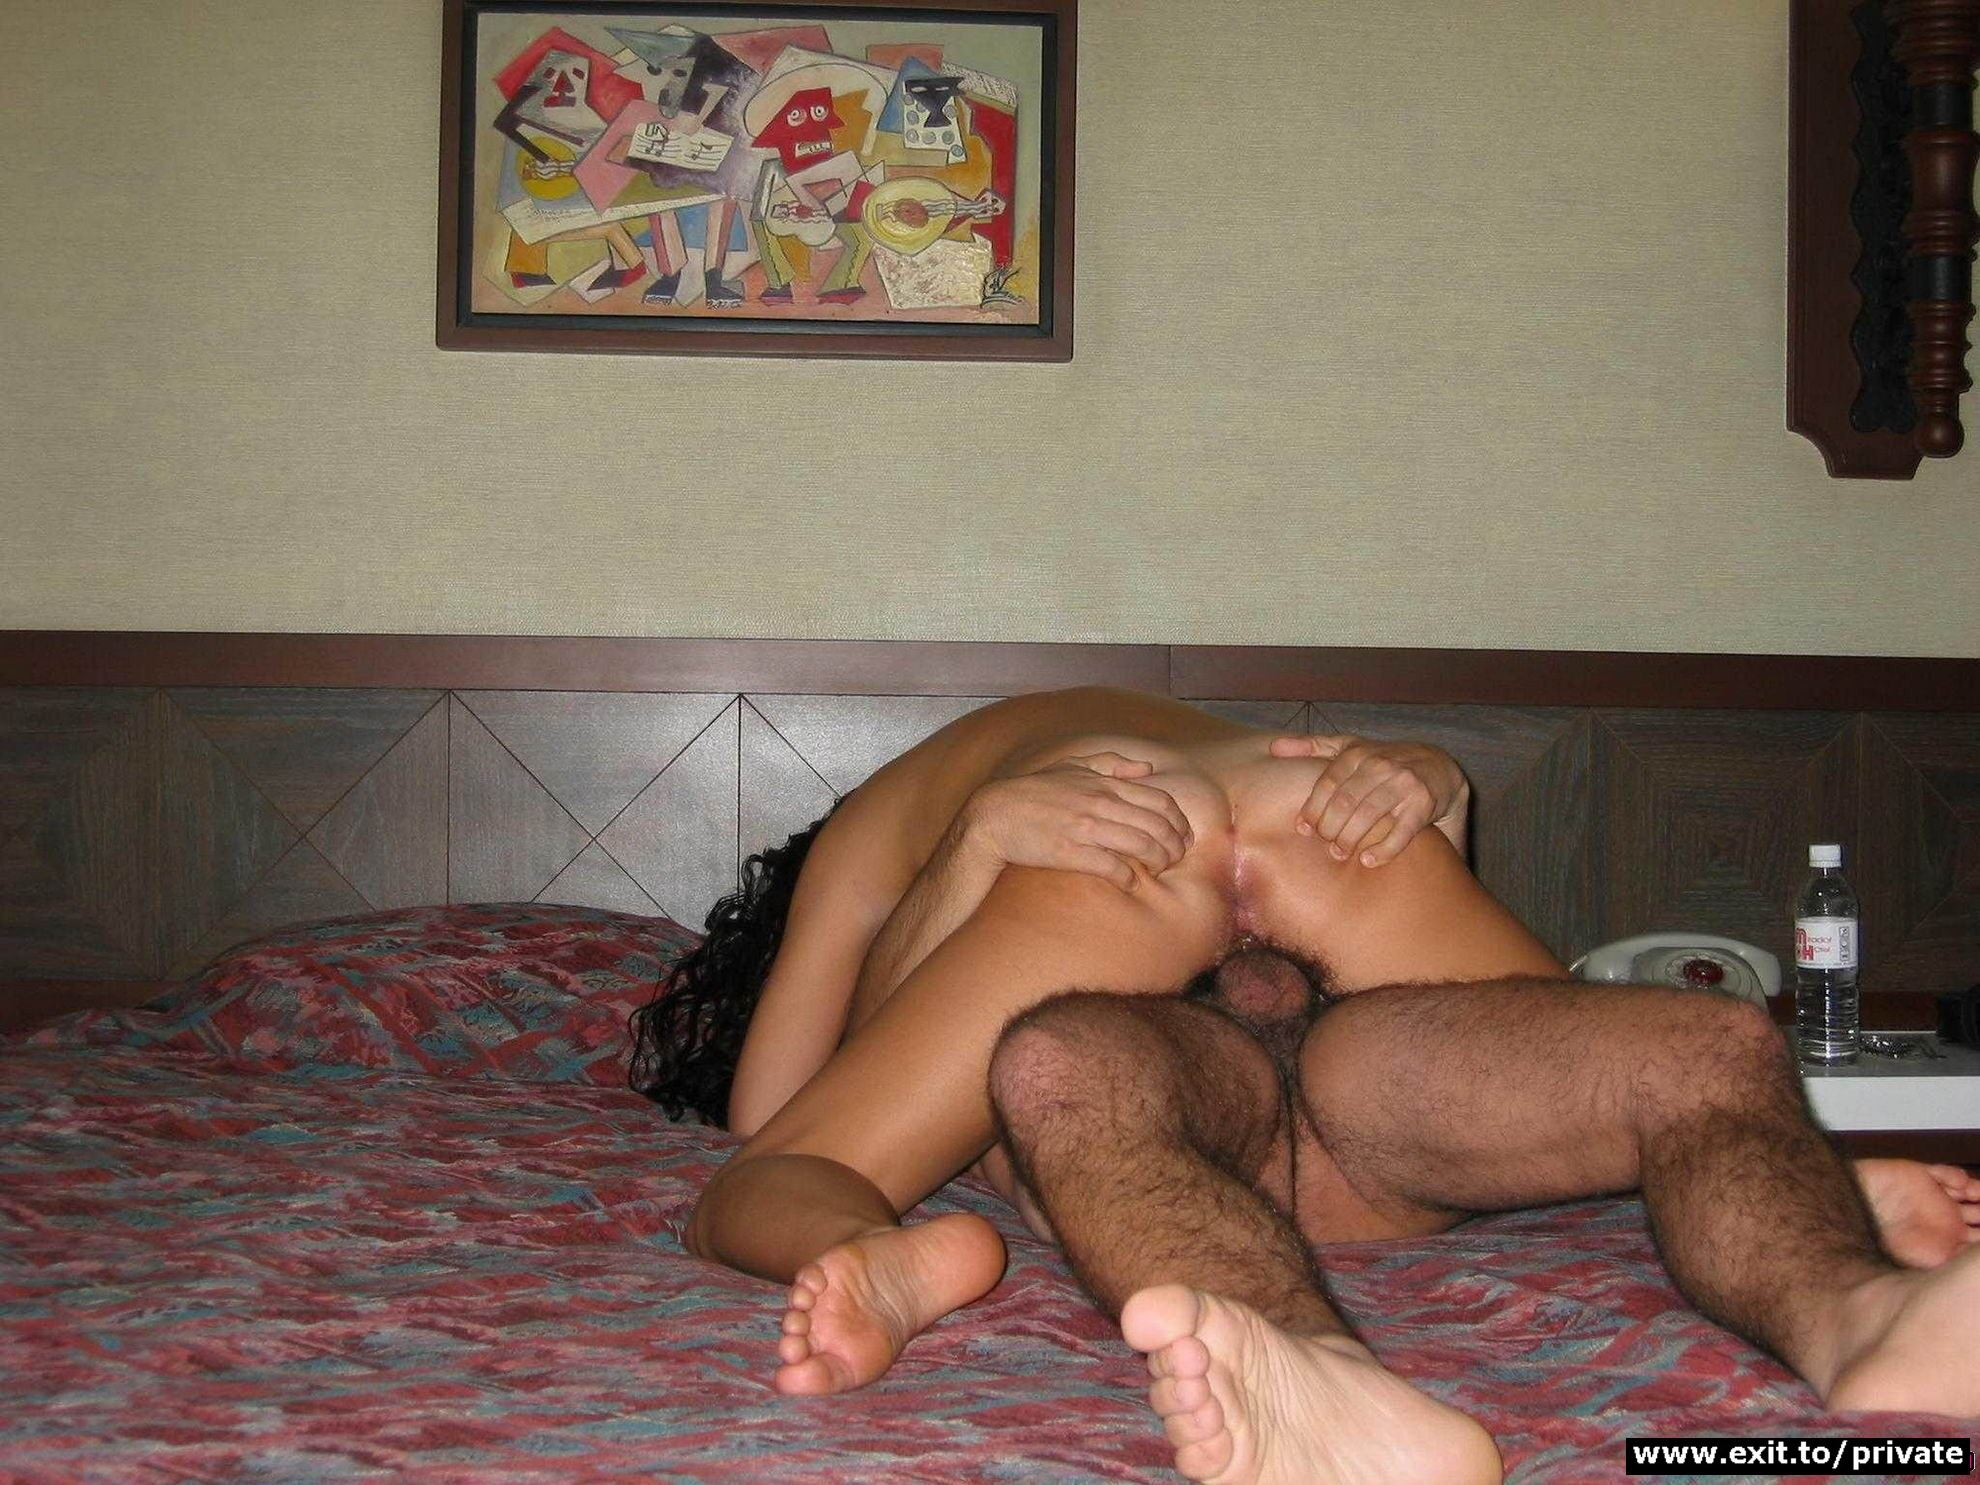 Nude women fuckin with men pic nsfw tube